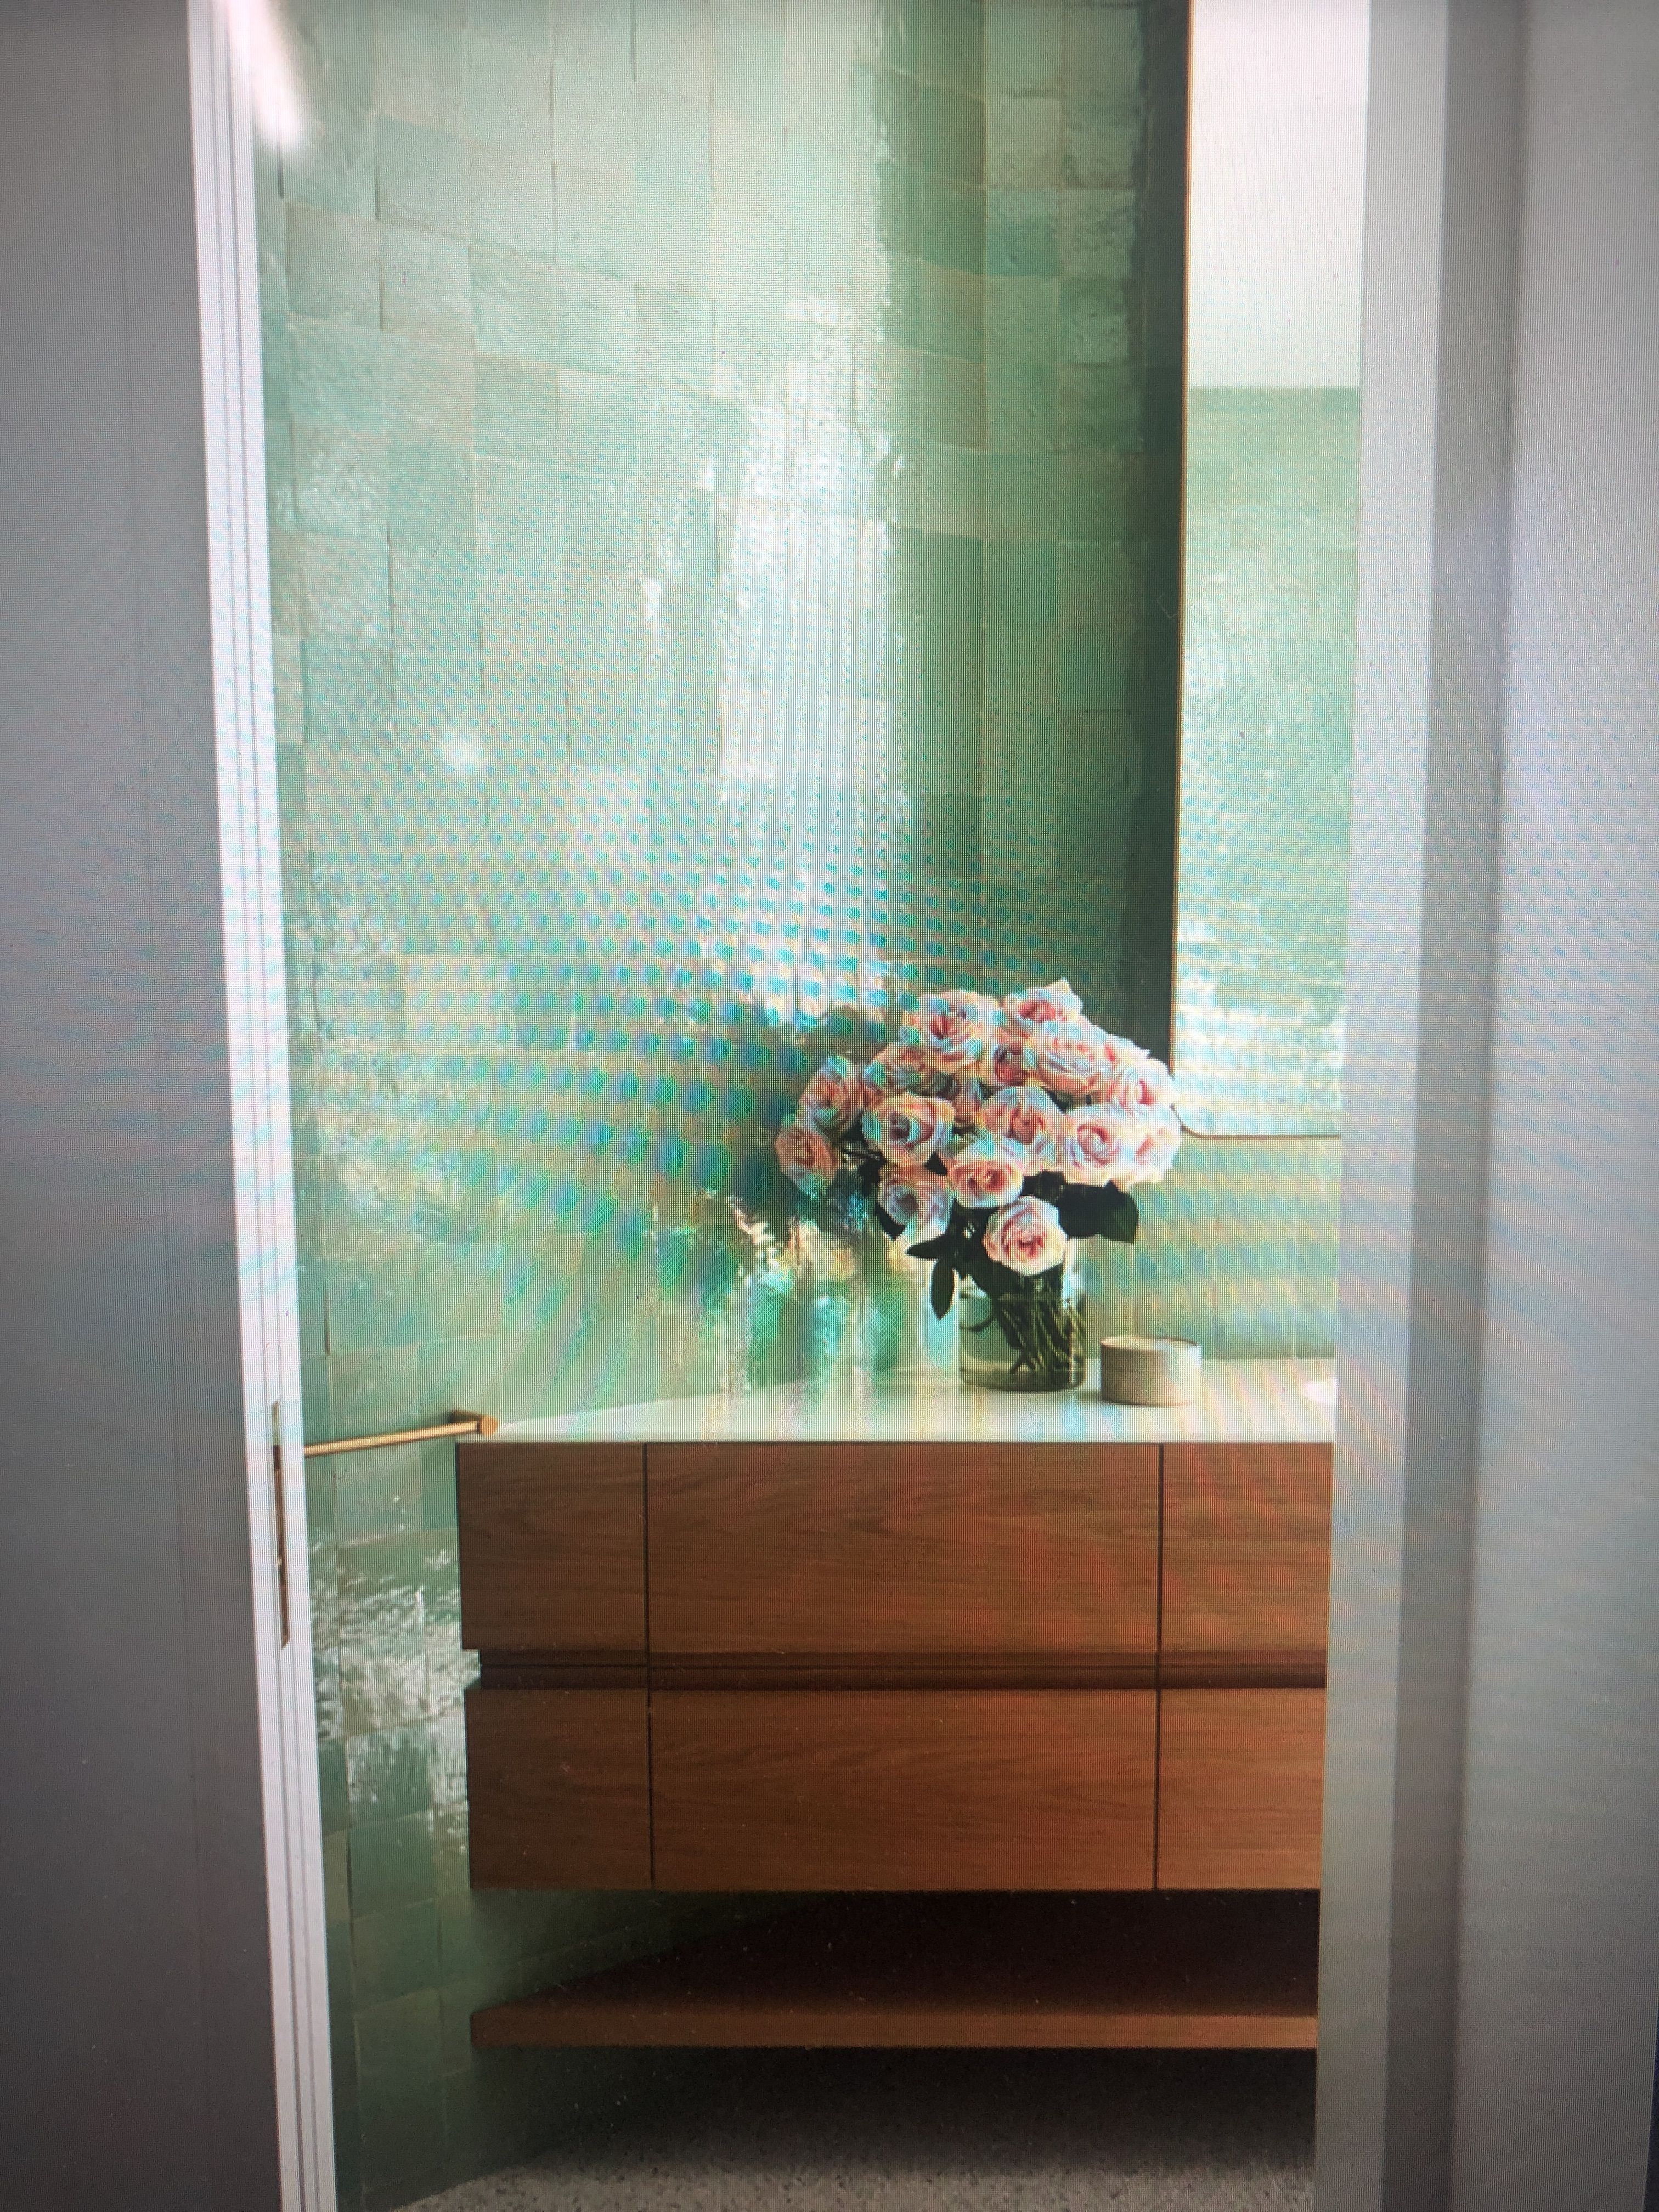 Bathroom. Lighted White Wooden Vanity Table With Mirror